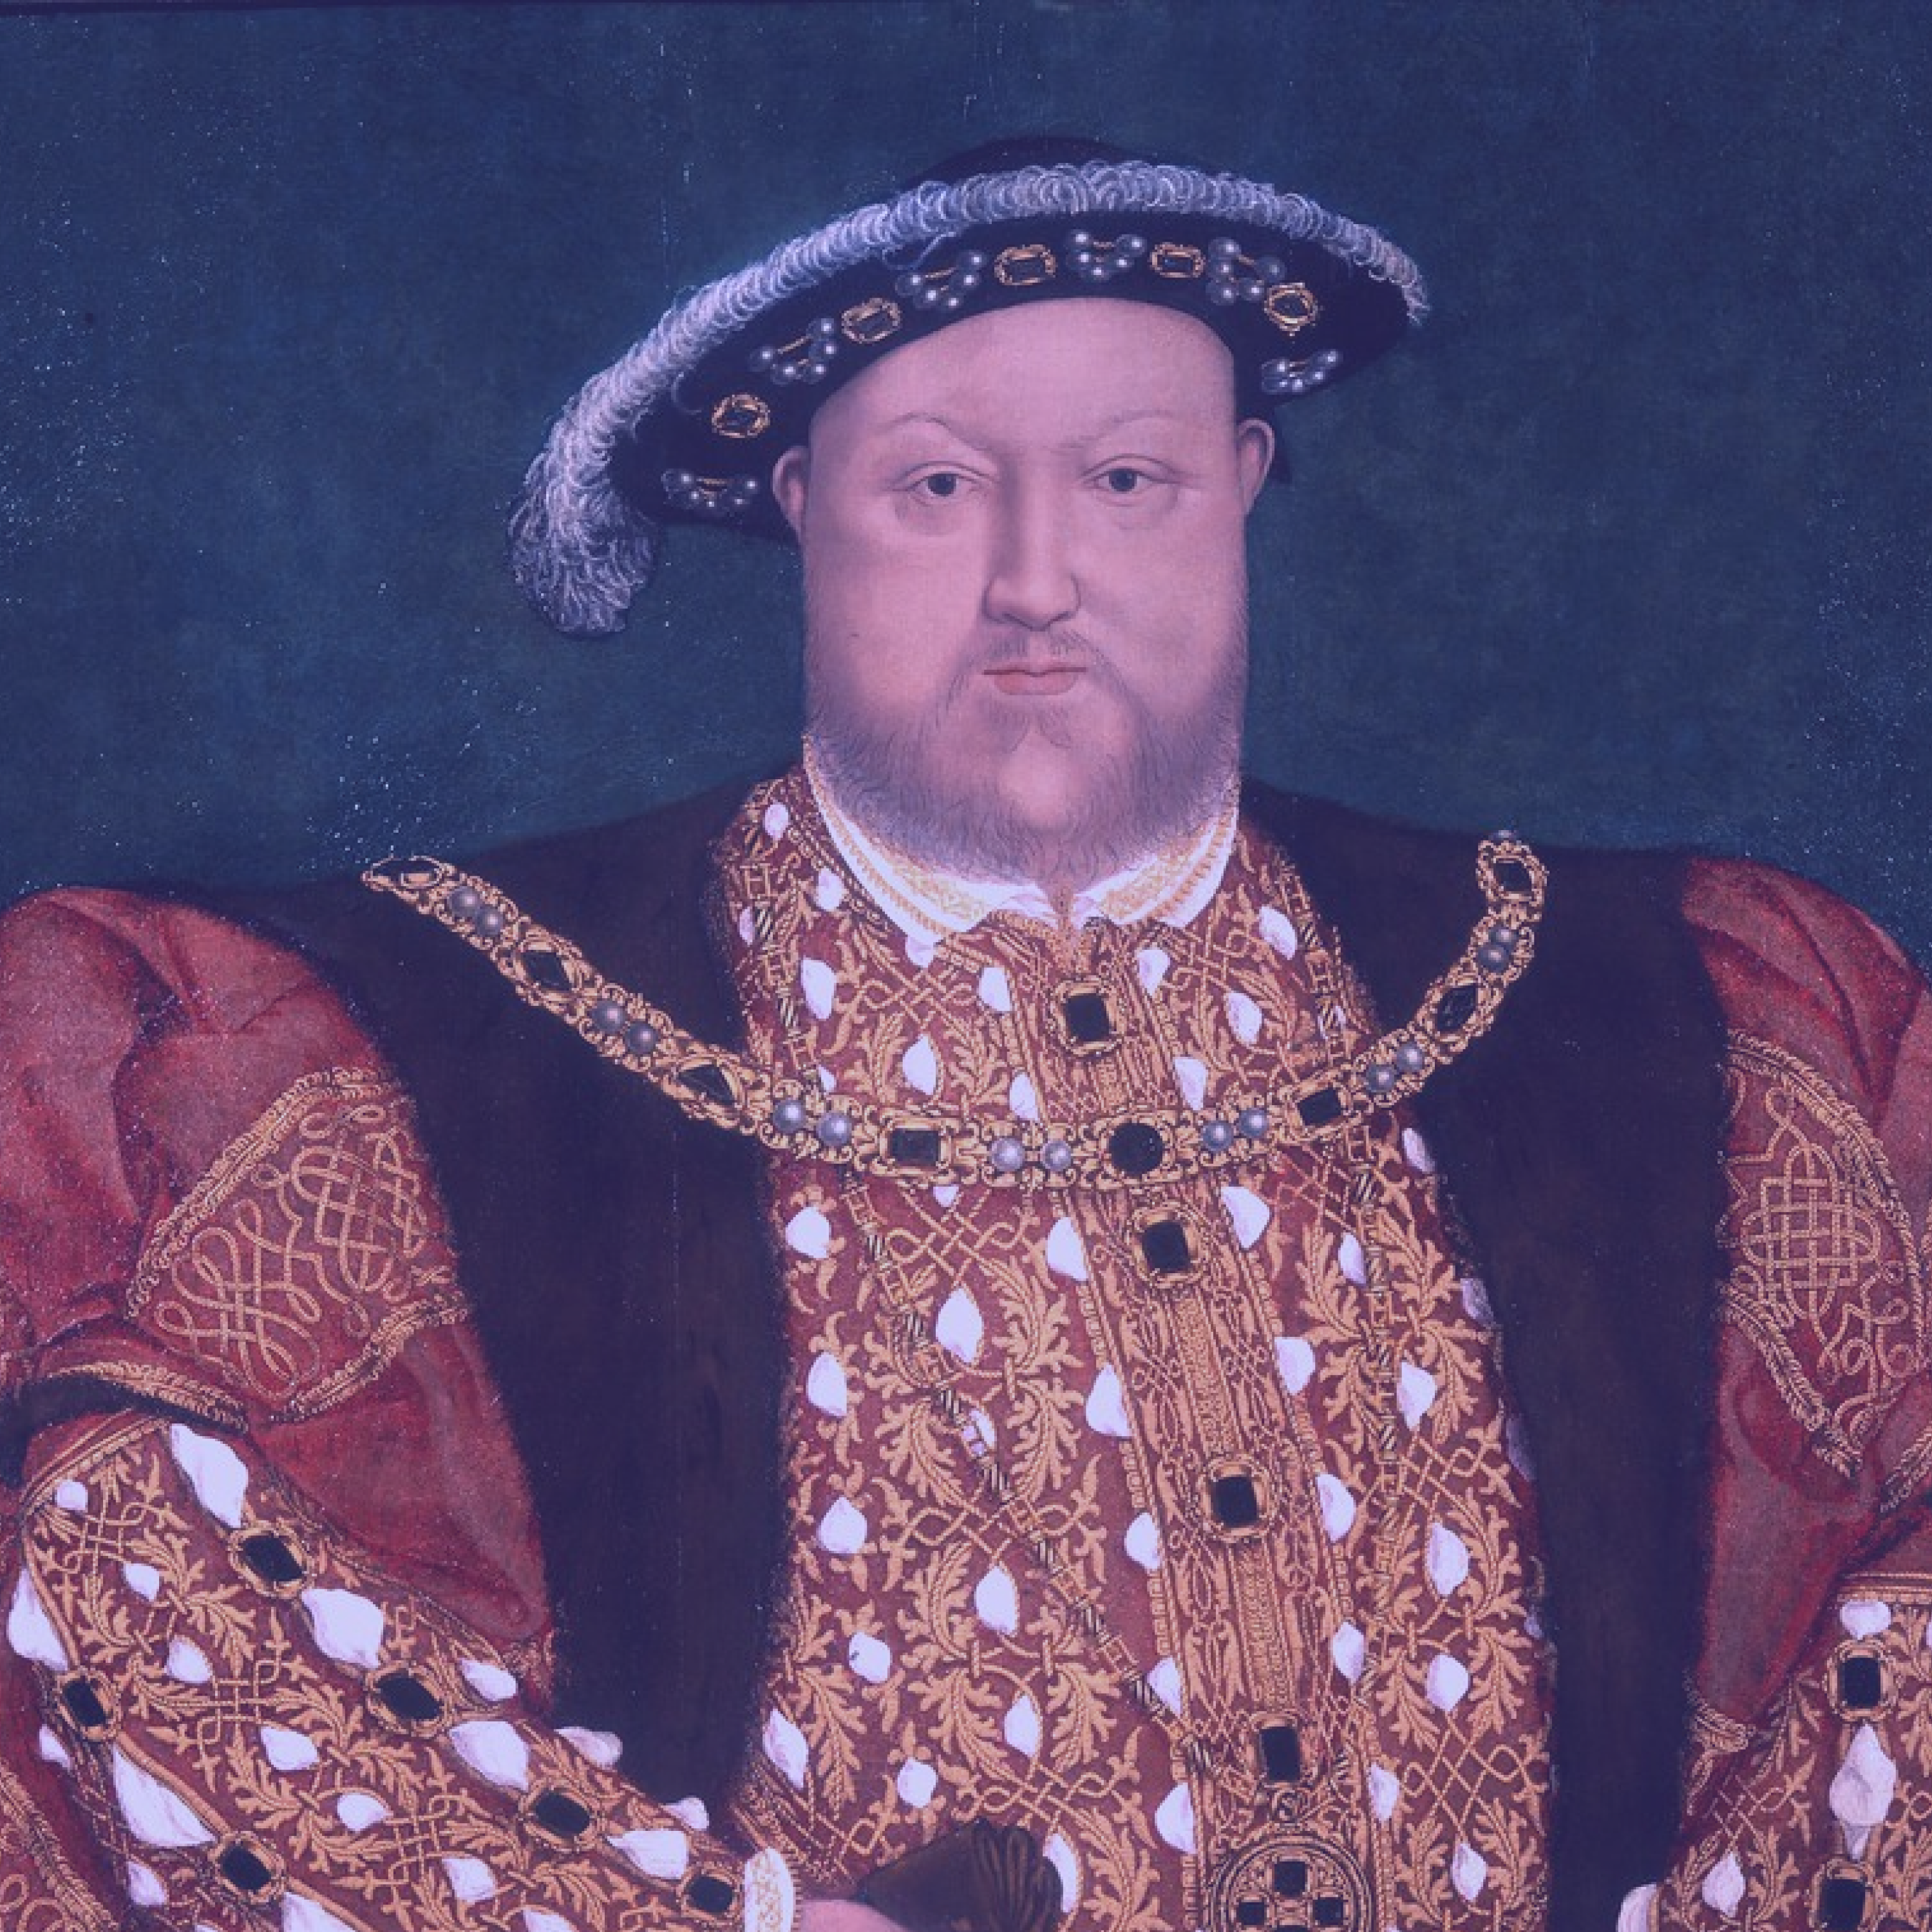 Henry VIII - The King With Six Wives